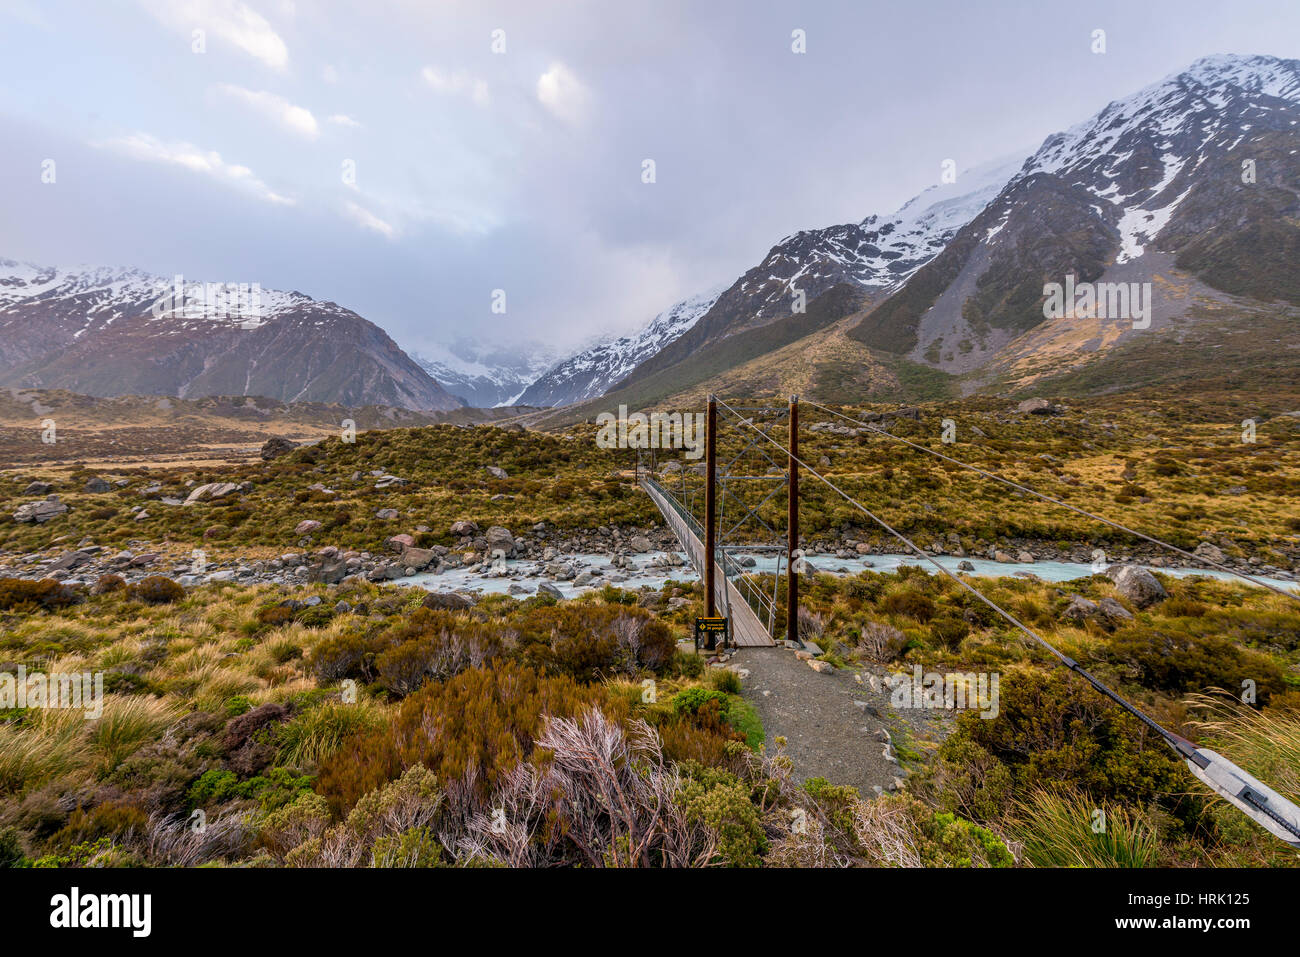 Bridge crosses Hooker River, Mountain, Mount Cook National Park, Canterbury Region, New Zealand - Stock Image